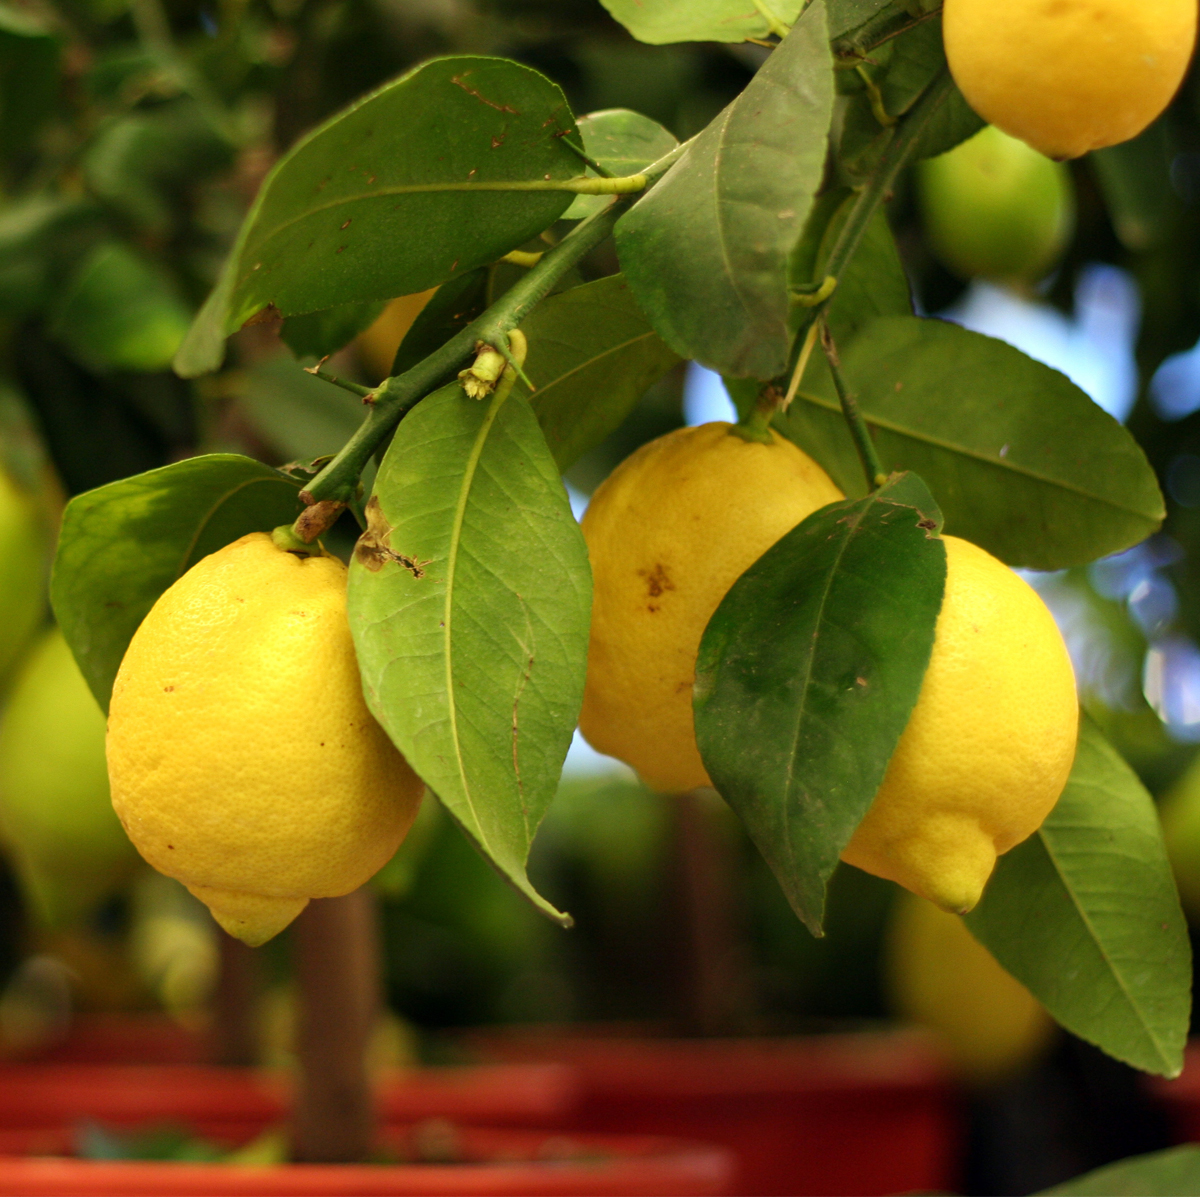 Improved_Meyer_Lemon_Tree_Drop_Shipper_Grow_Scripts_Size_1_Gallon_Age_1_Year